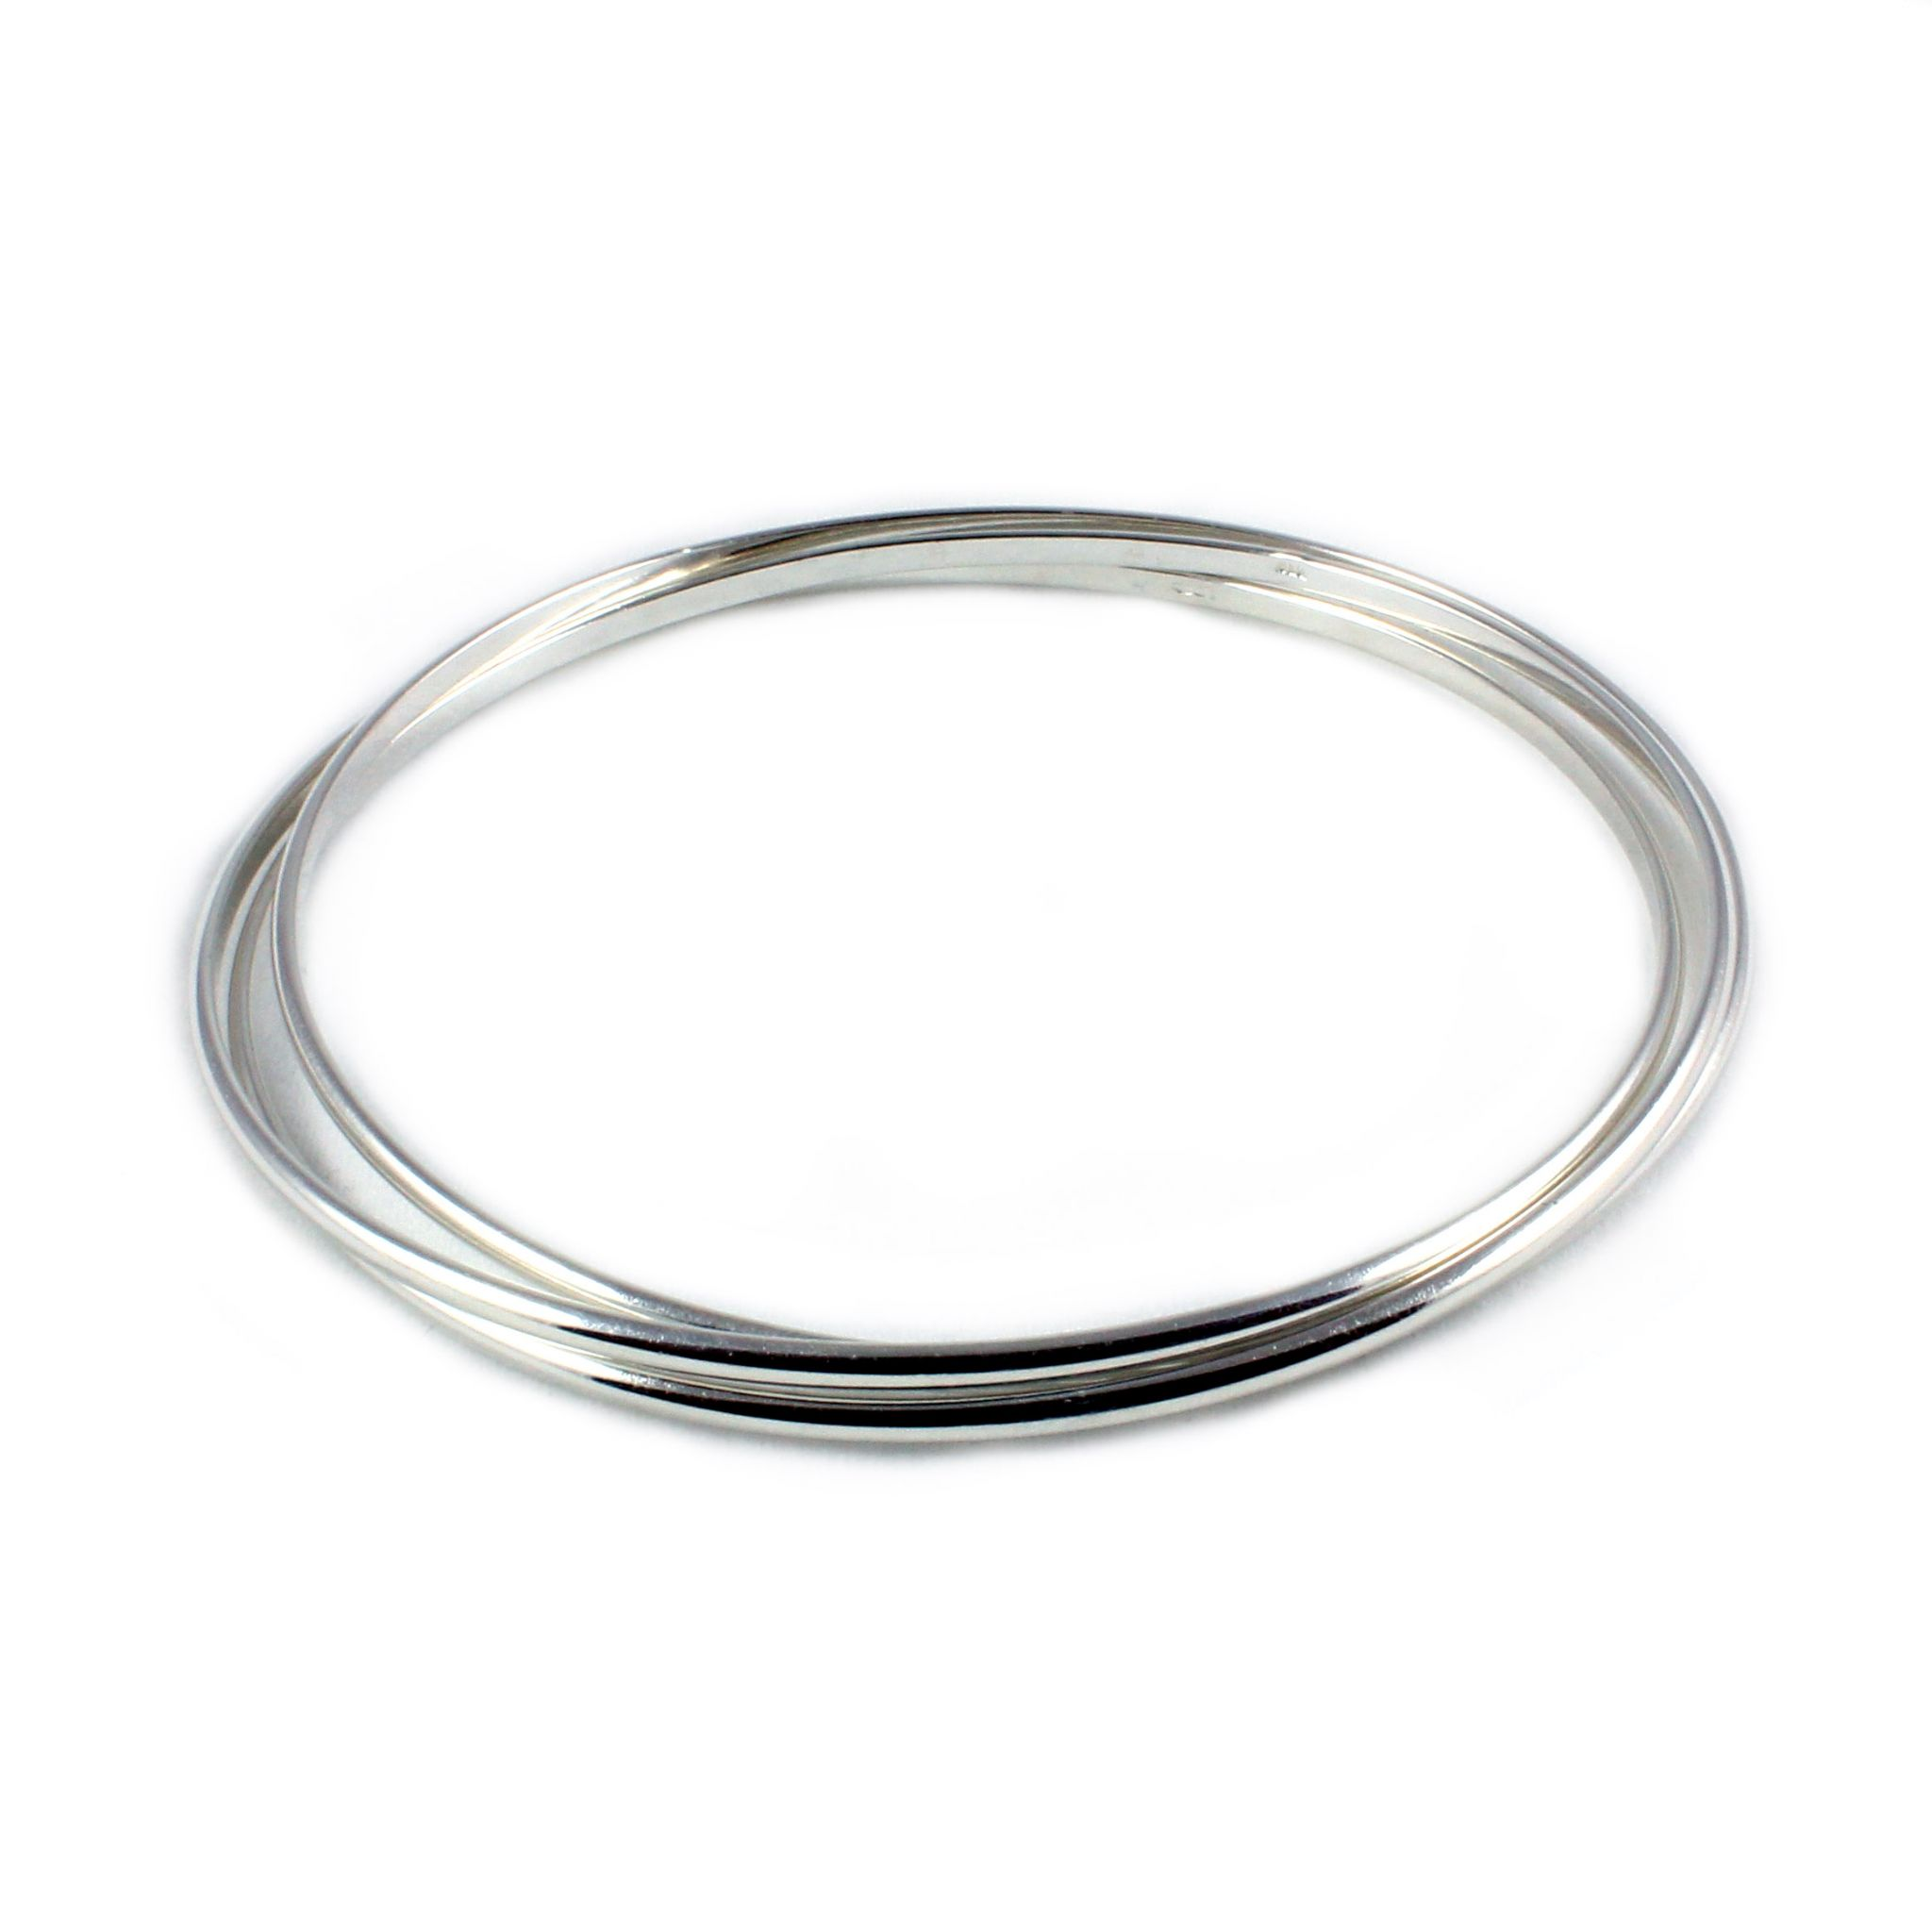 sterling jaxon by original wrapped jewellery product otisjaxonsilverjewellery silver otis heart bangle bangles wire